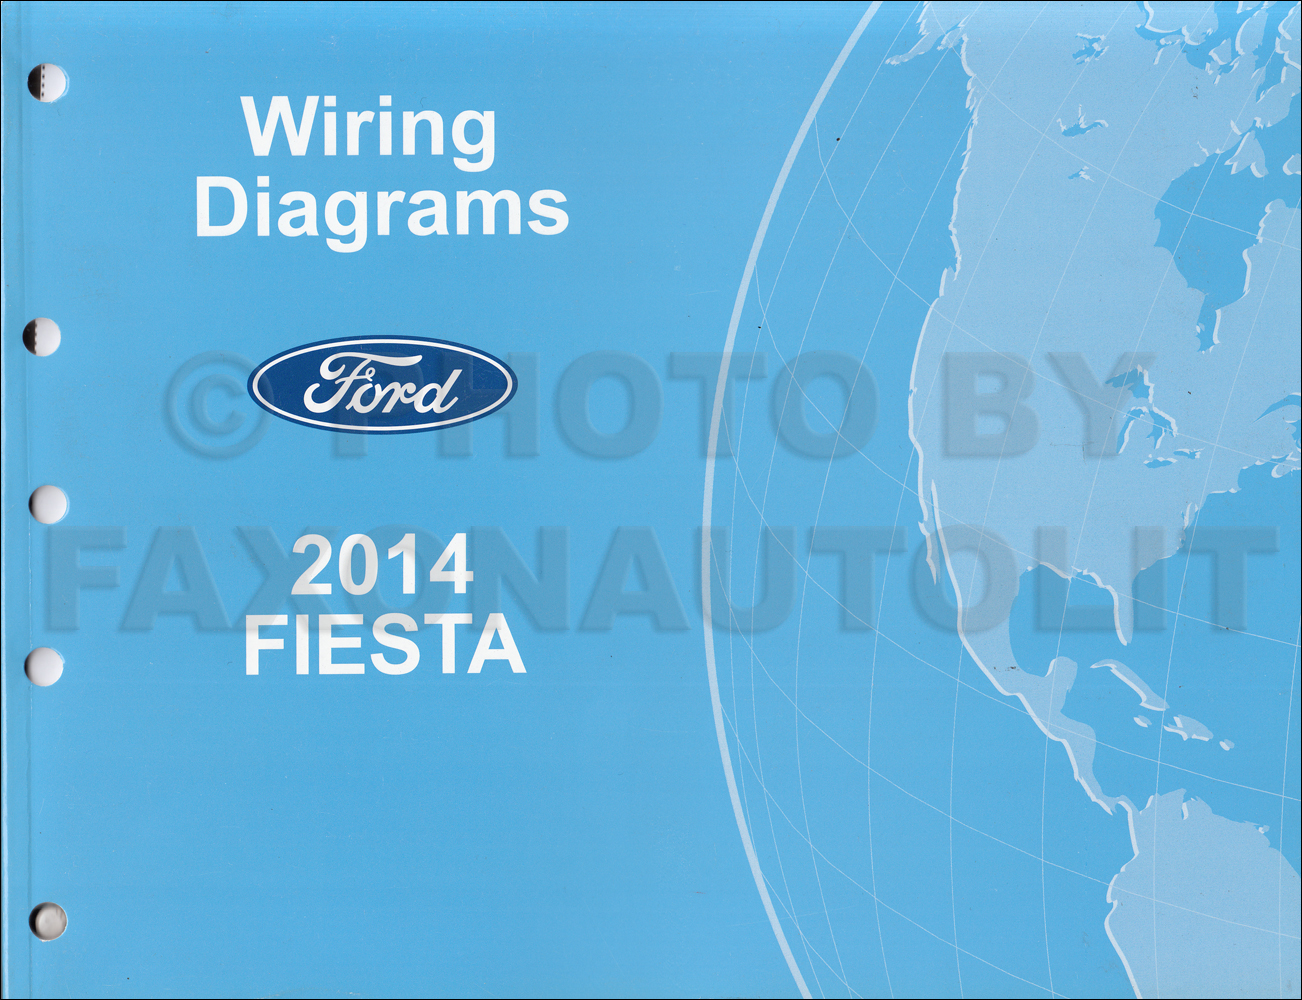 2014FordFiestaOWD 2014 ford fiesta wiring diagram manual original 2014 ford fiesta wiring diagram at gsmportal.co